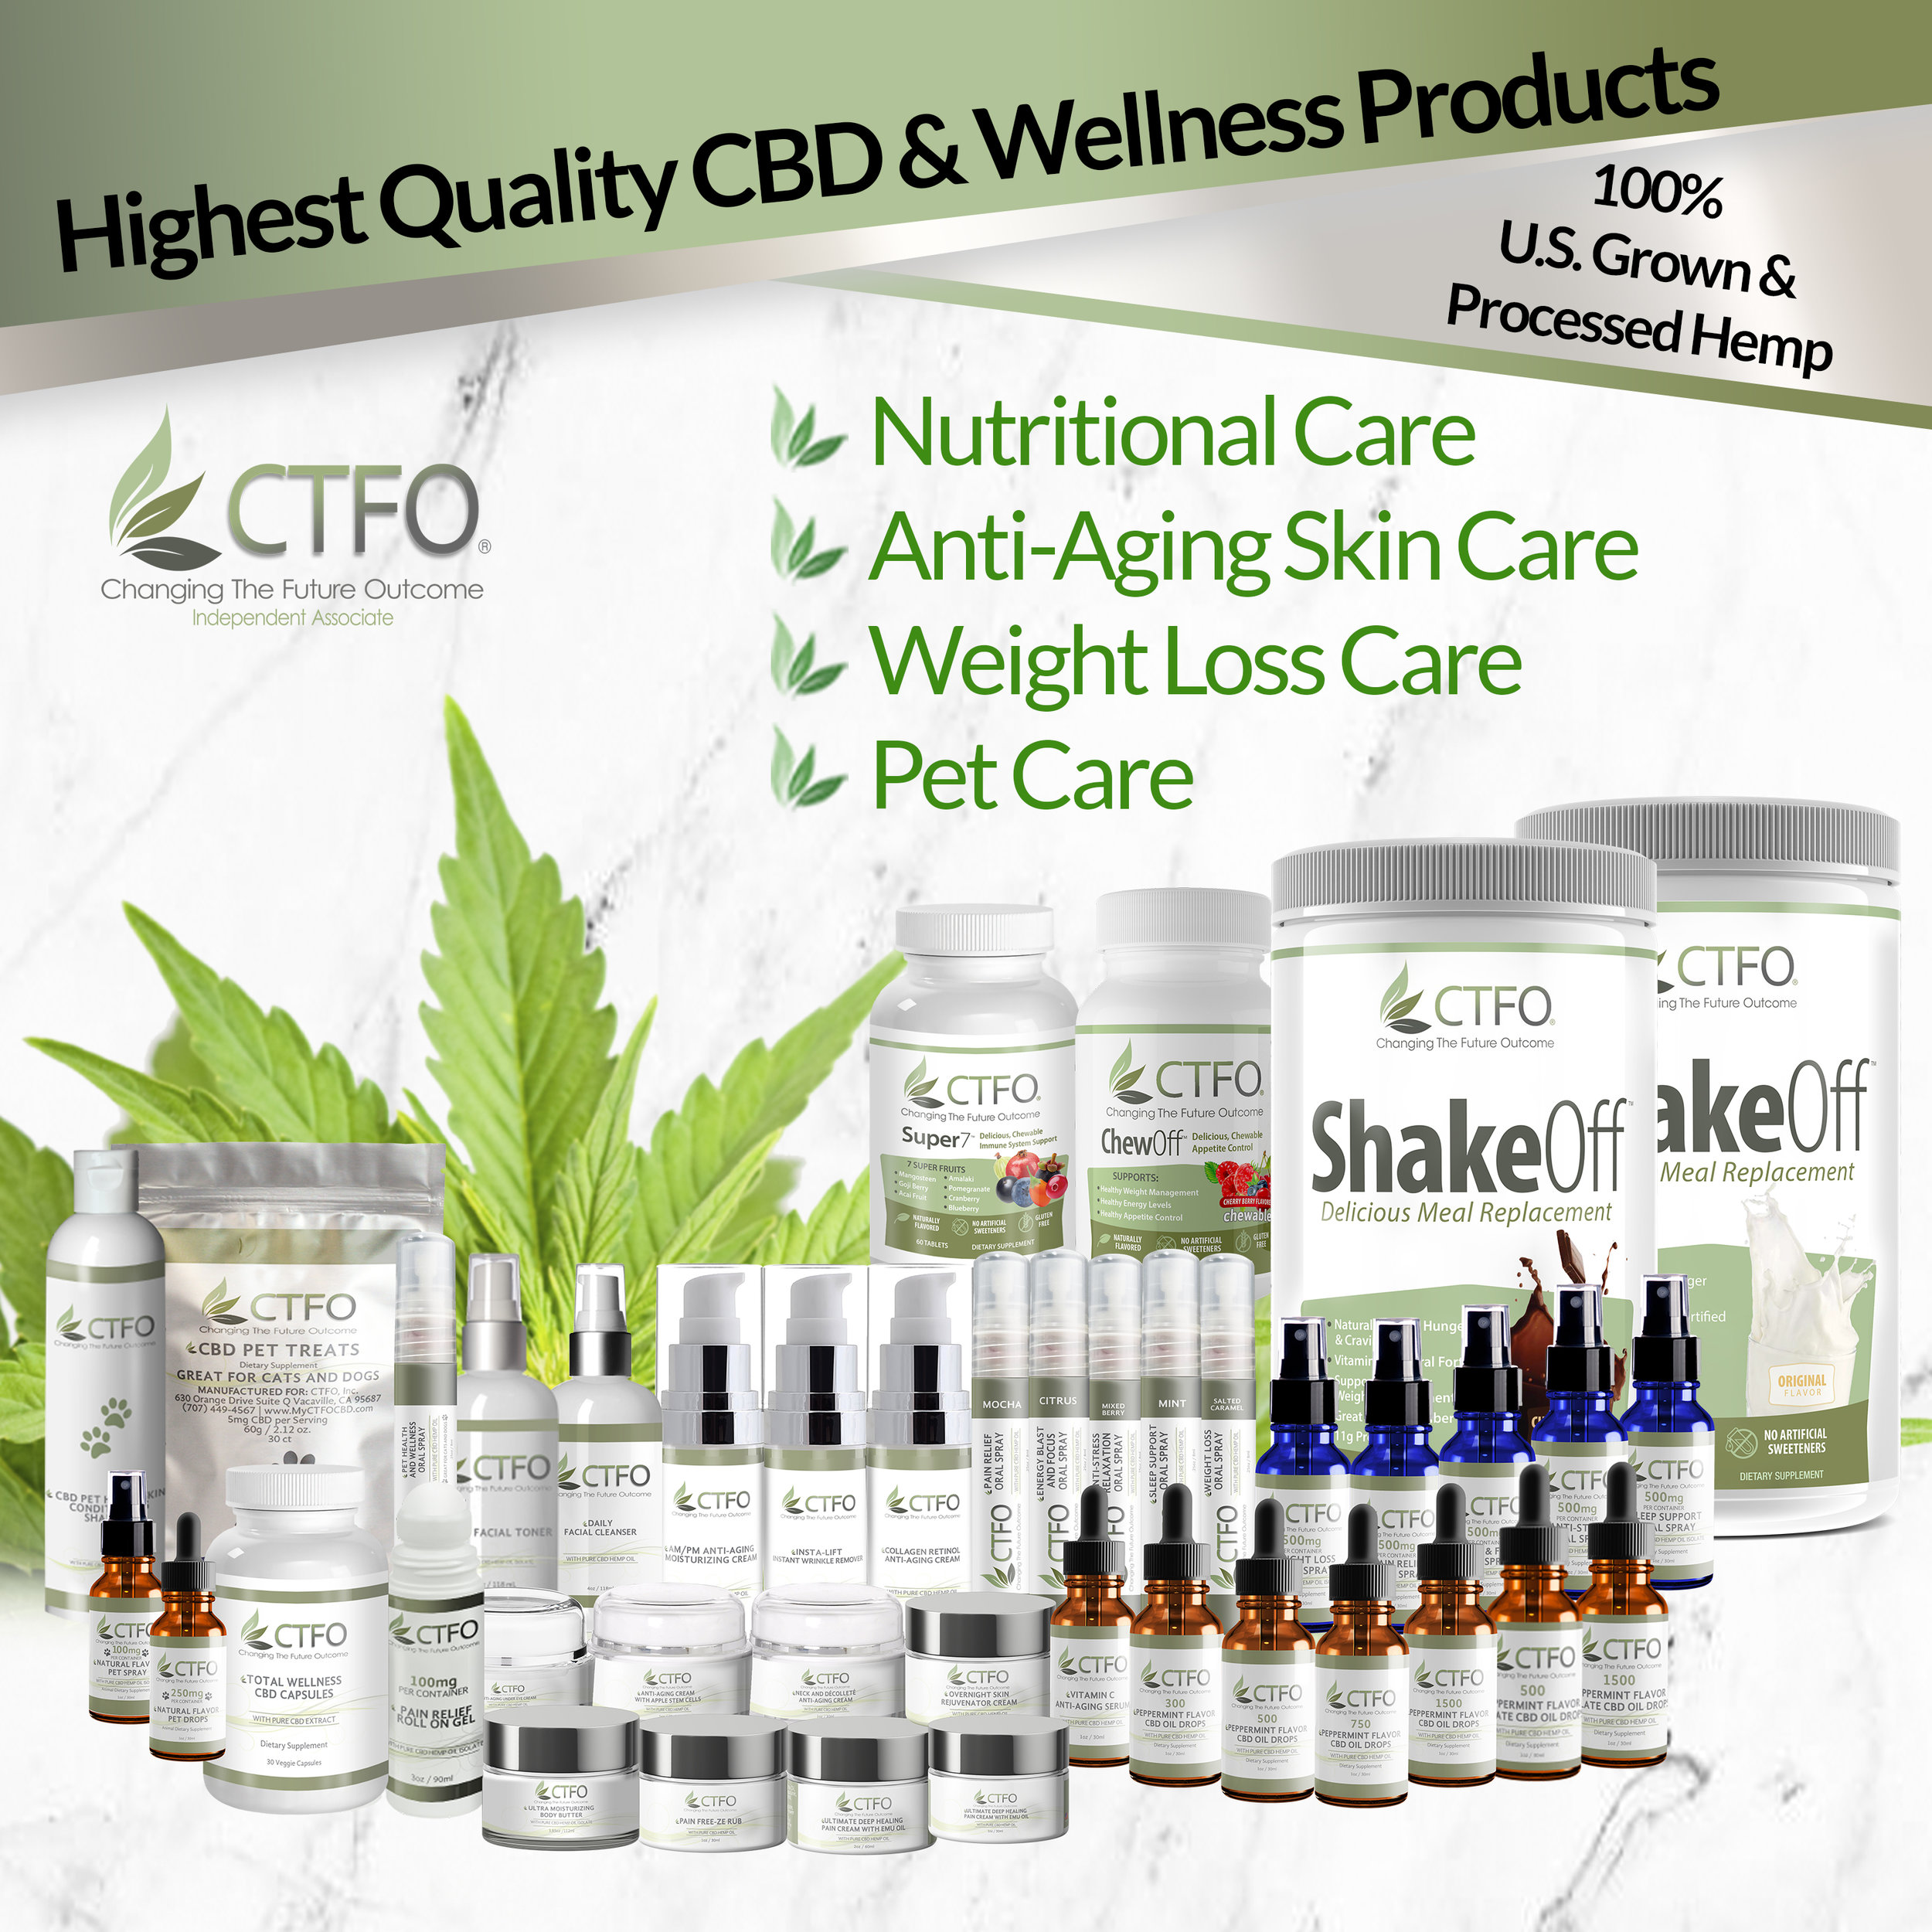 Wellness Elevation (WE) CBD is now Partnered with CTFO - CTFO is committed to having the highest quality, lowest priced products on the market. And just as importantly, we vow to always provide the fairest, most lucrative, most unique and powerful business opportunity ever created.We invite you to become fully familiarized with all aspects of our amazing product line and our totally unique business because there are no Gimmicks or Gotchas here. We know, the deeper you dig, the better CTFO gets.